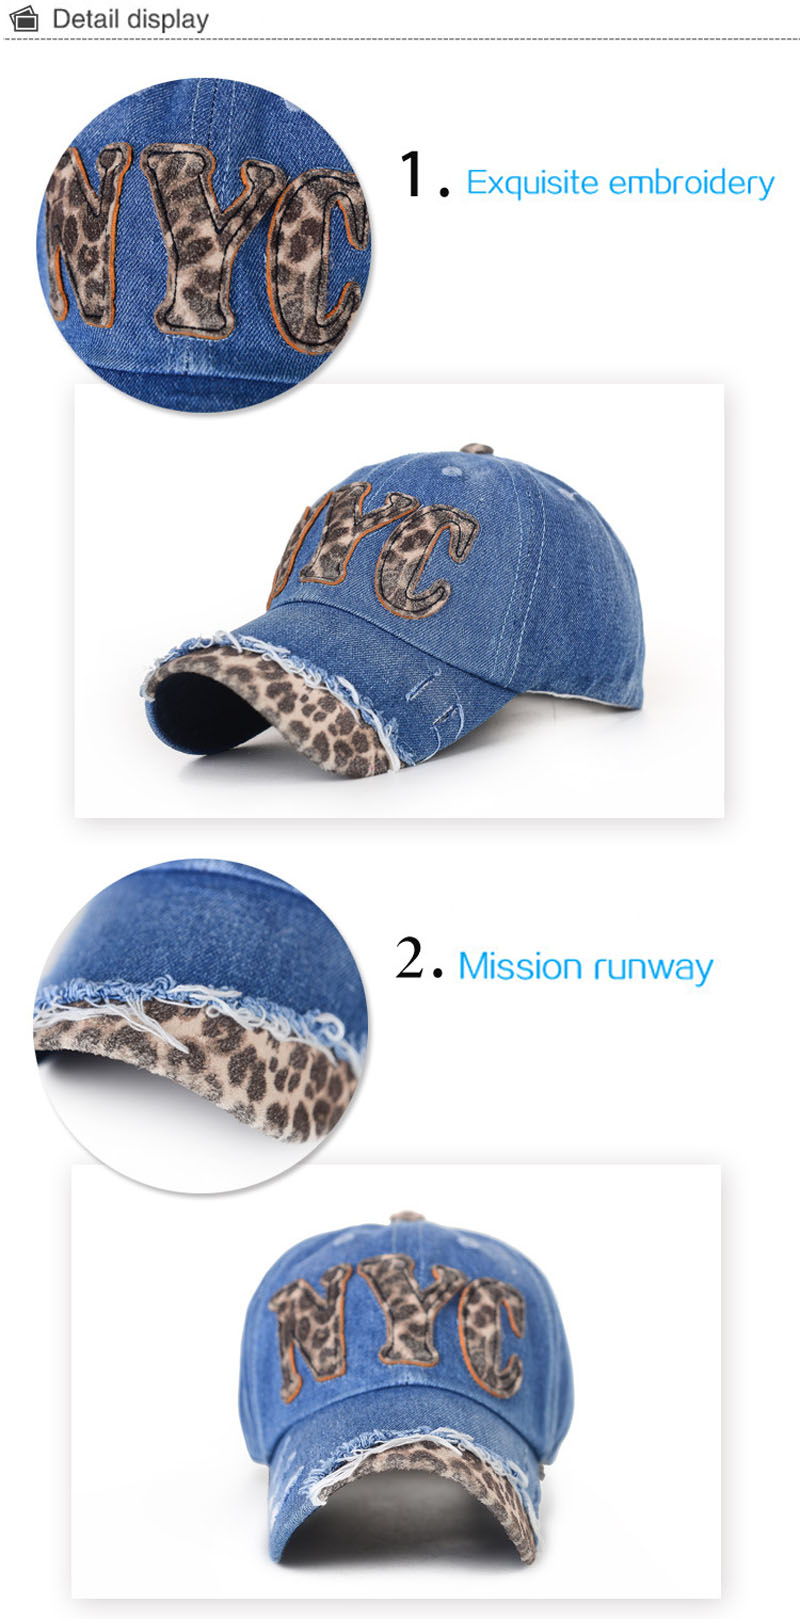 Baseball cap own leopard print new fashion unisex 6 panel plain blank NYC stylish flat brim tie dye snapback caps hats